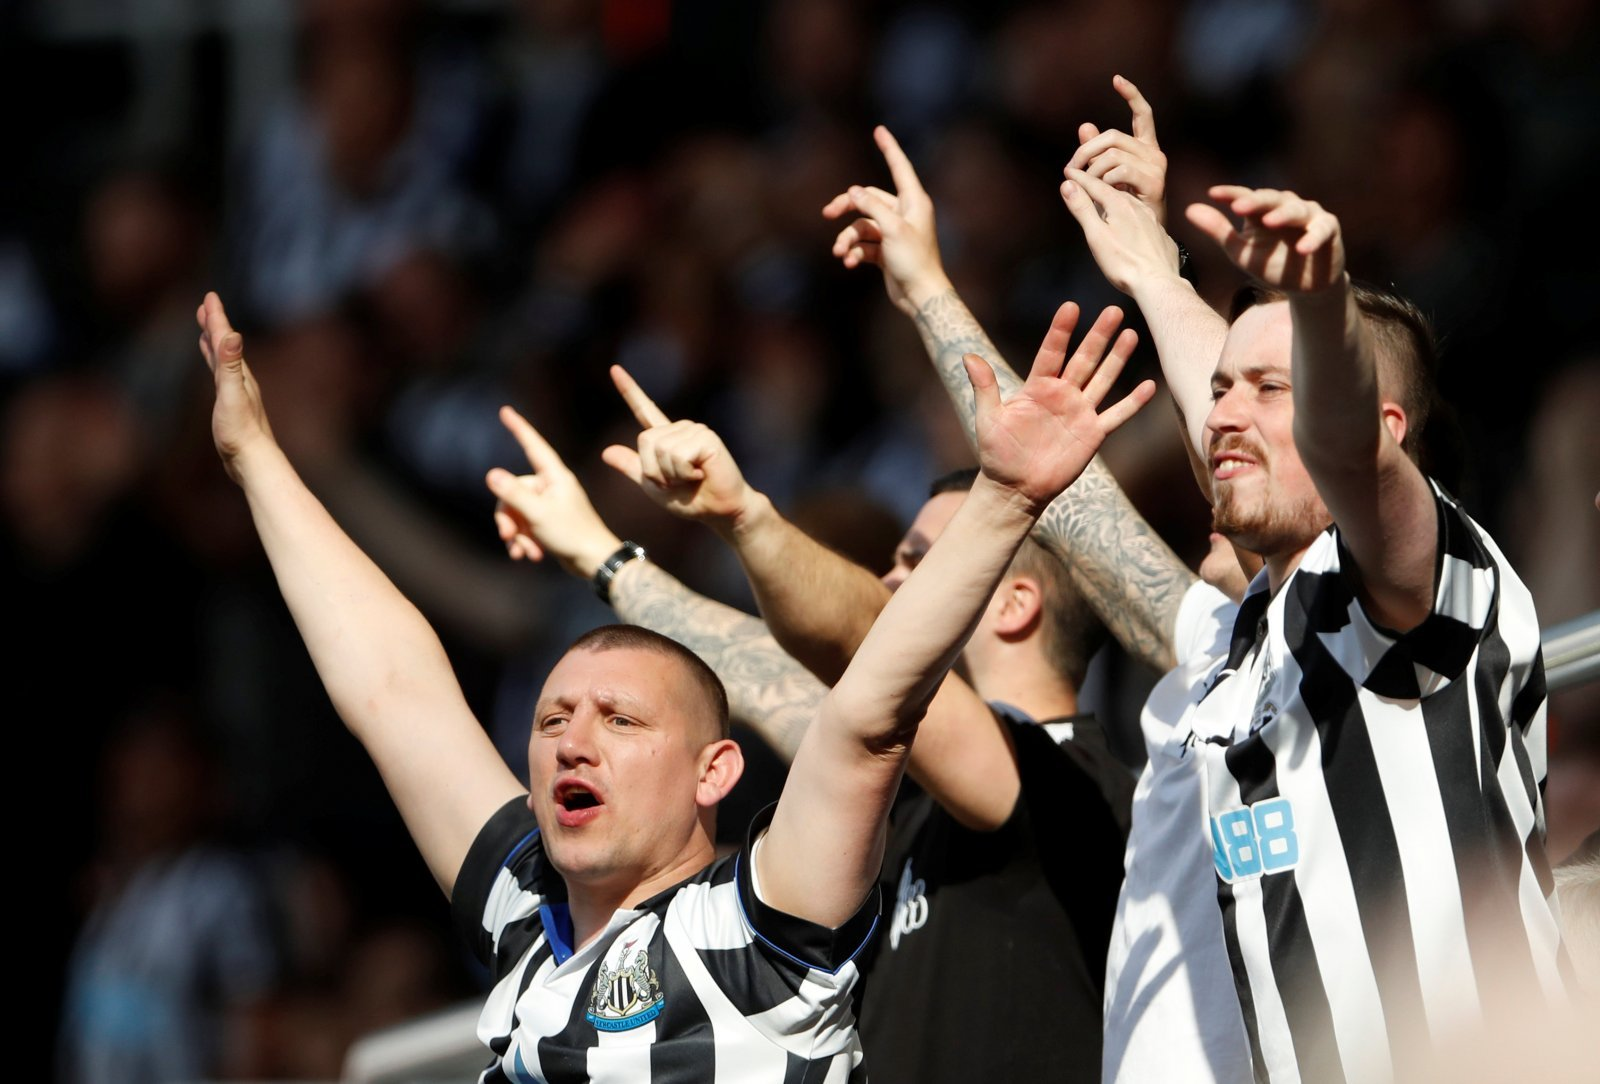 Newcastle United: These fans respected the performance in Liverpool loss